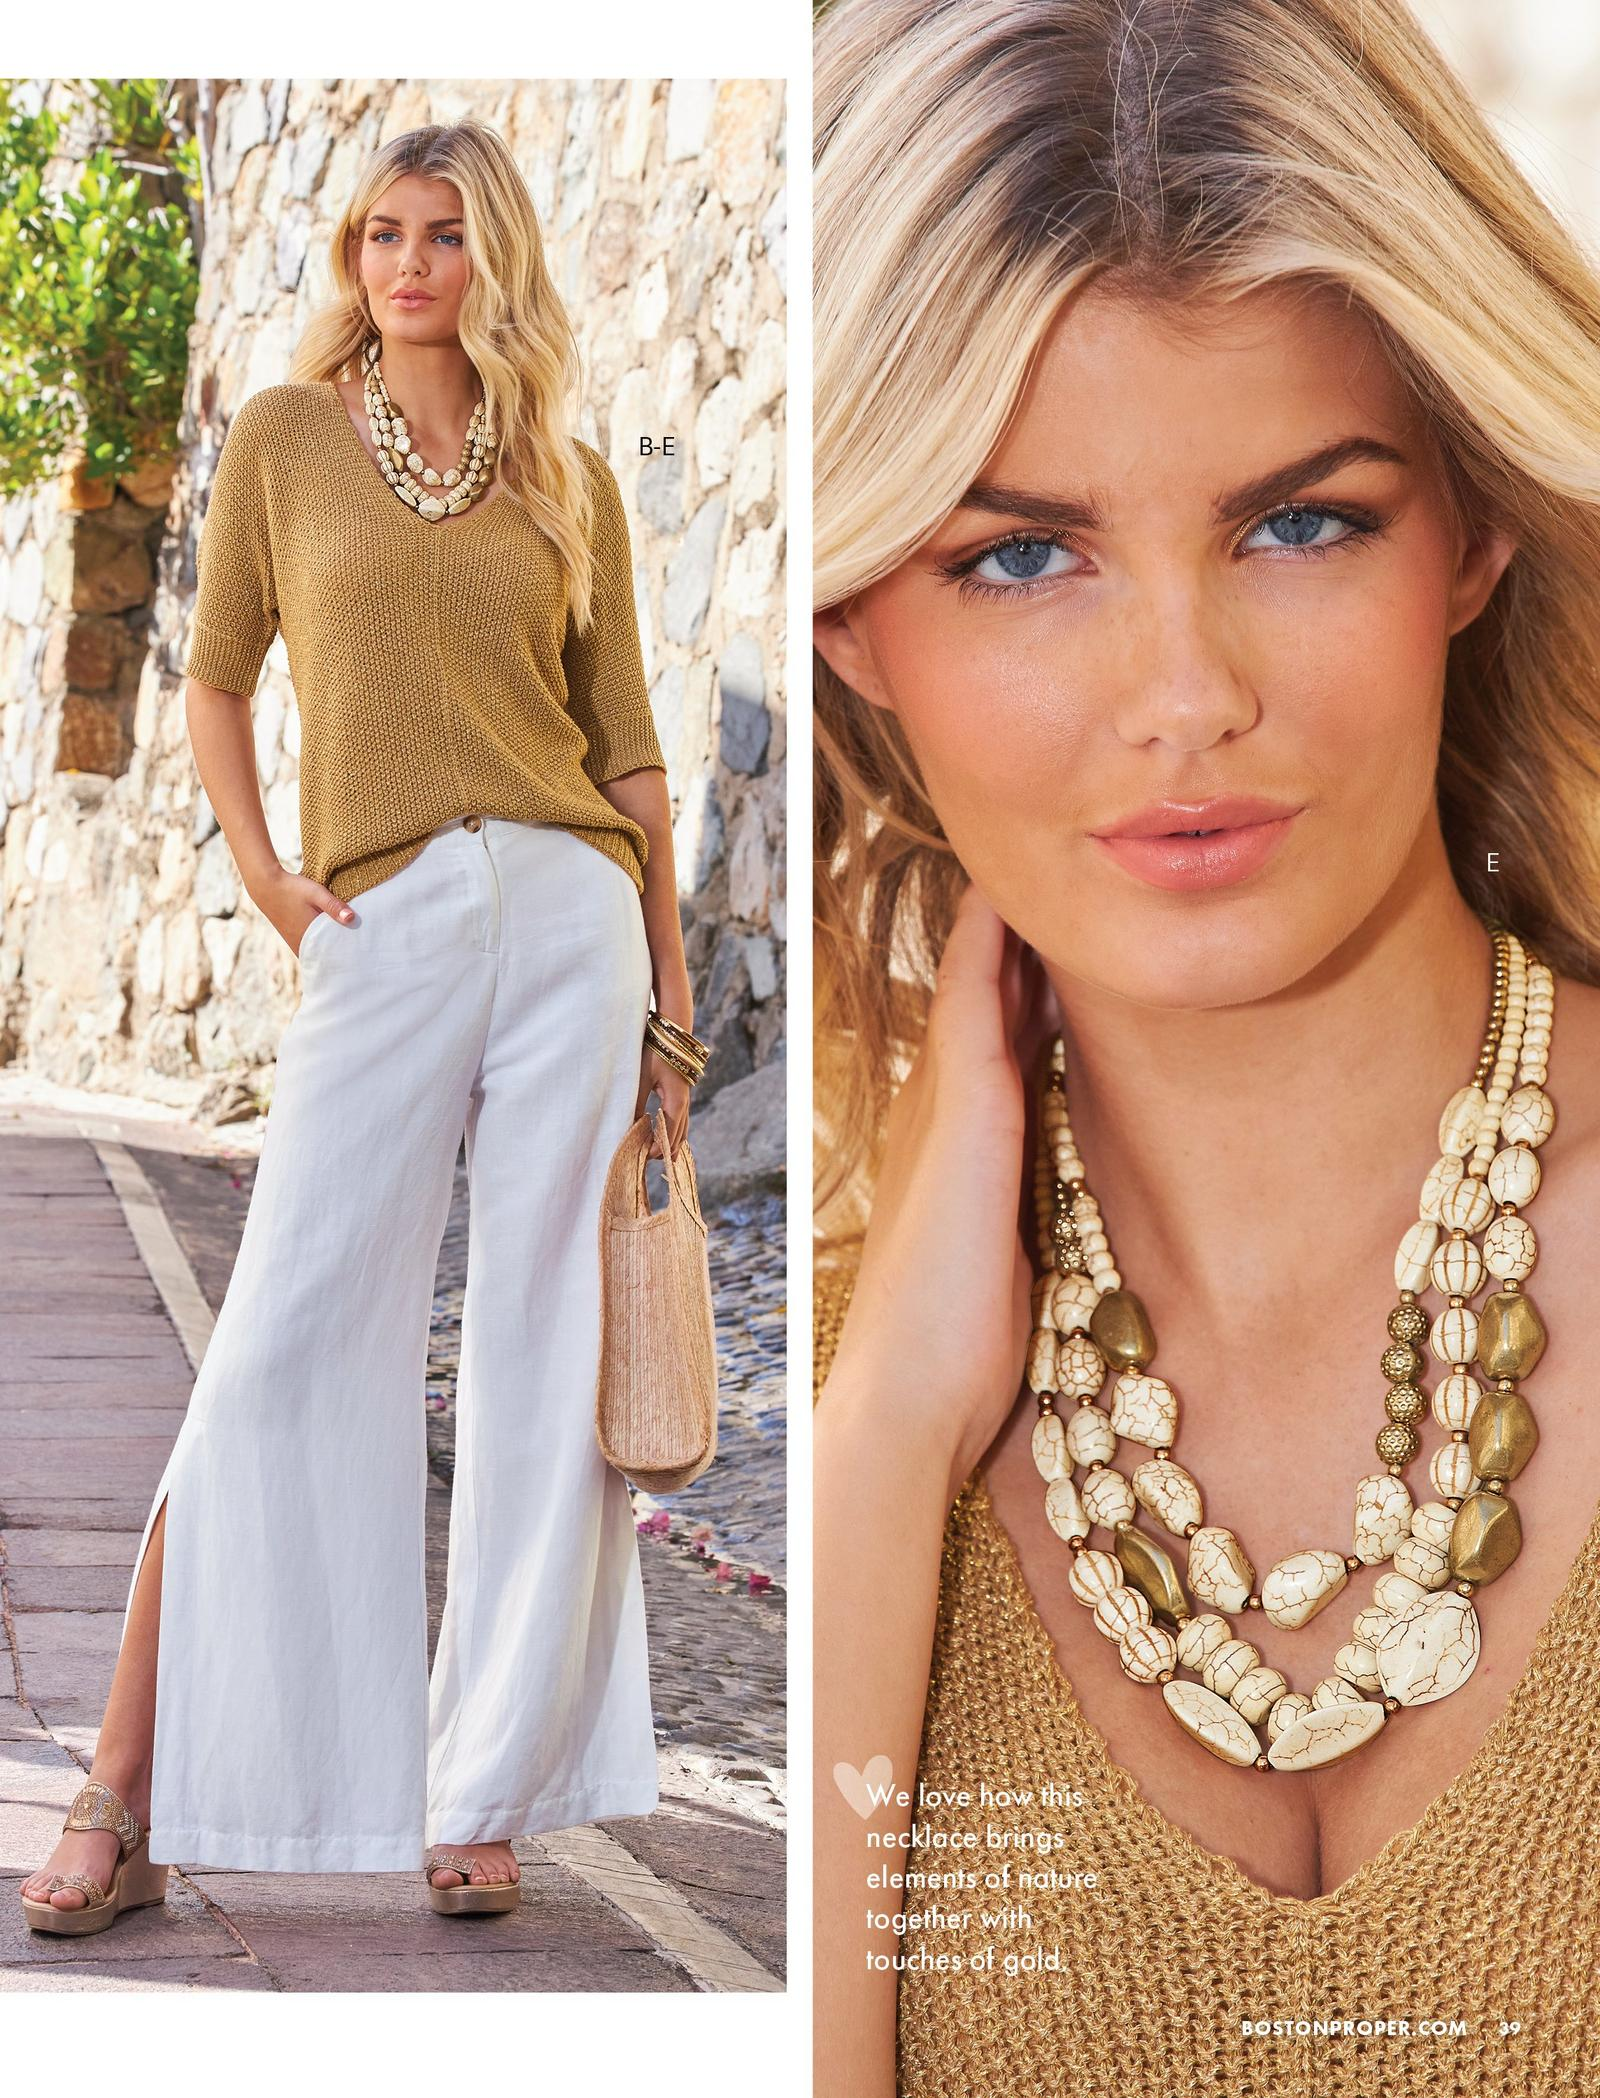 left model wearing a gold metallic slouchy sweater, white linen pants, gold wedges, stone necklace, and holding a straw bag. right model showing a close-up of the stone necklace.